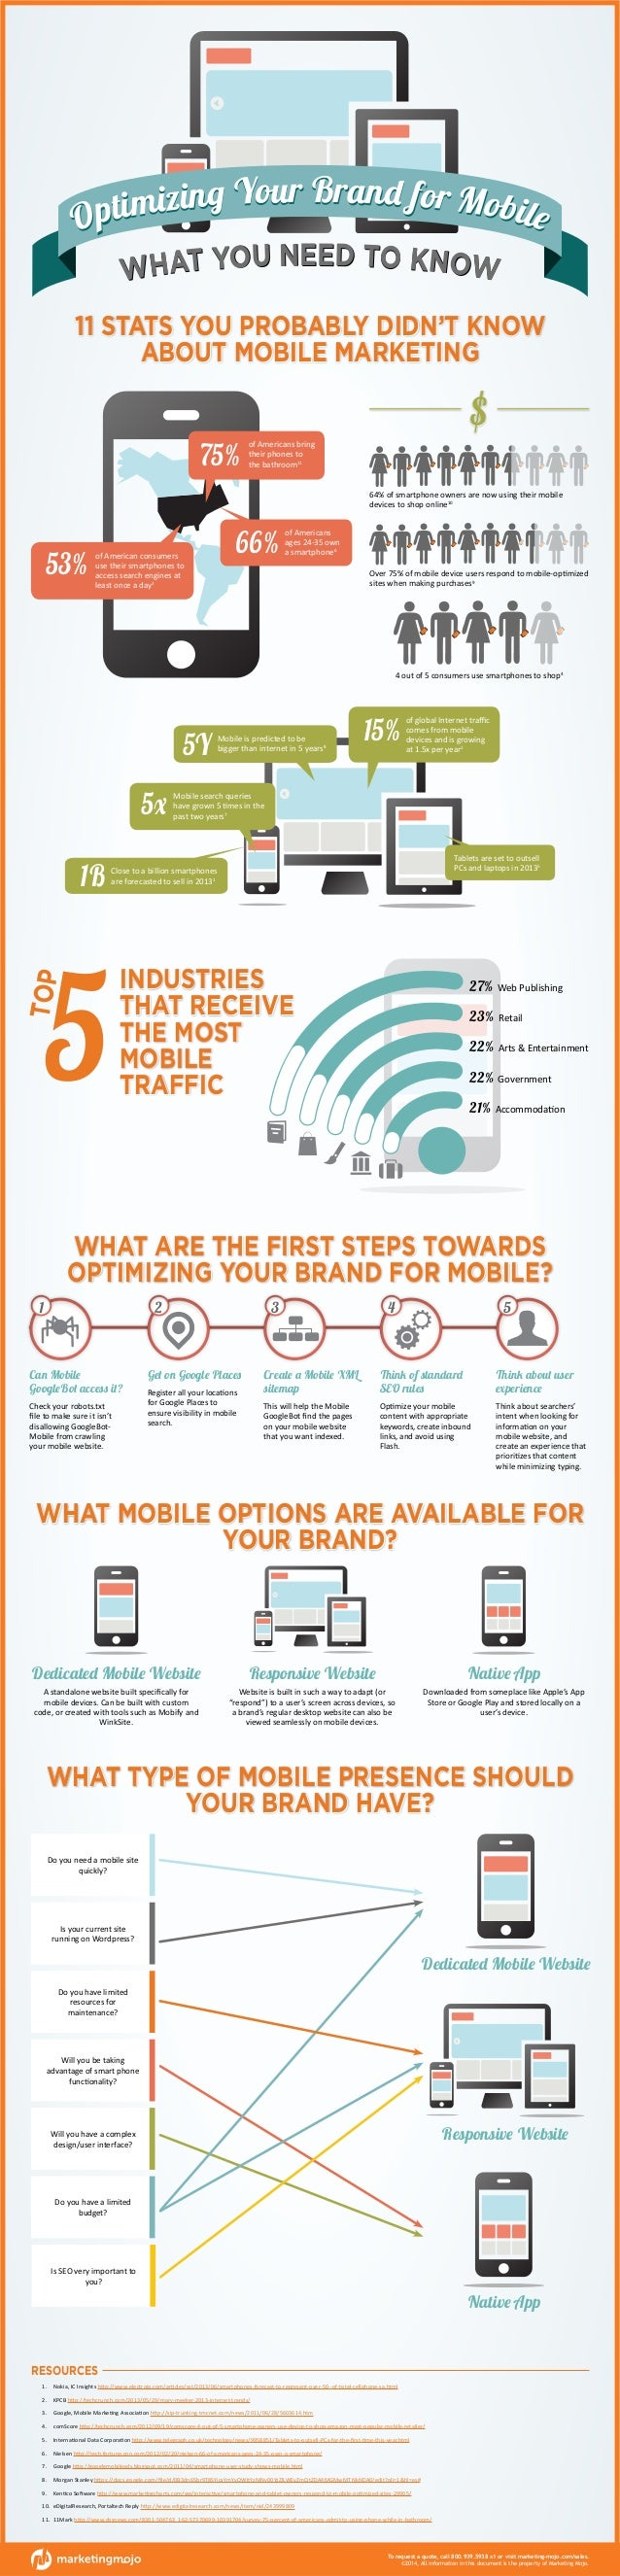 z ing Your Brand for Mobile timi Op AT YOU NEED TO KNOW WH  11 STATS YOU PROBABLY DIDN'T KNOW ABOUT MOBILE MARKETING  75% ...